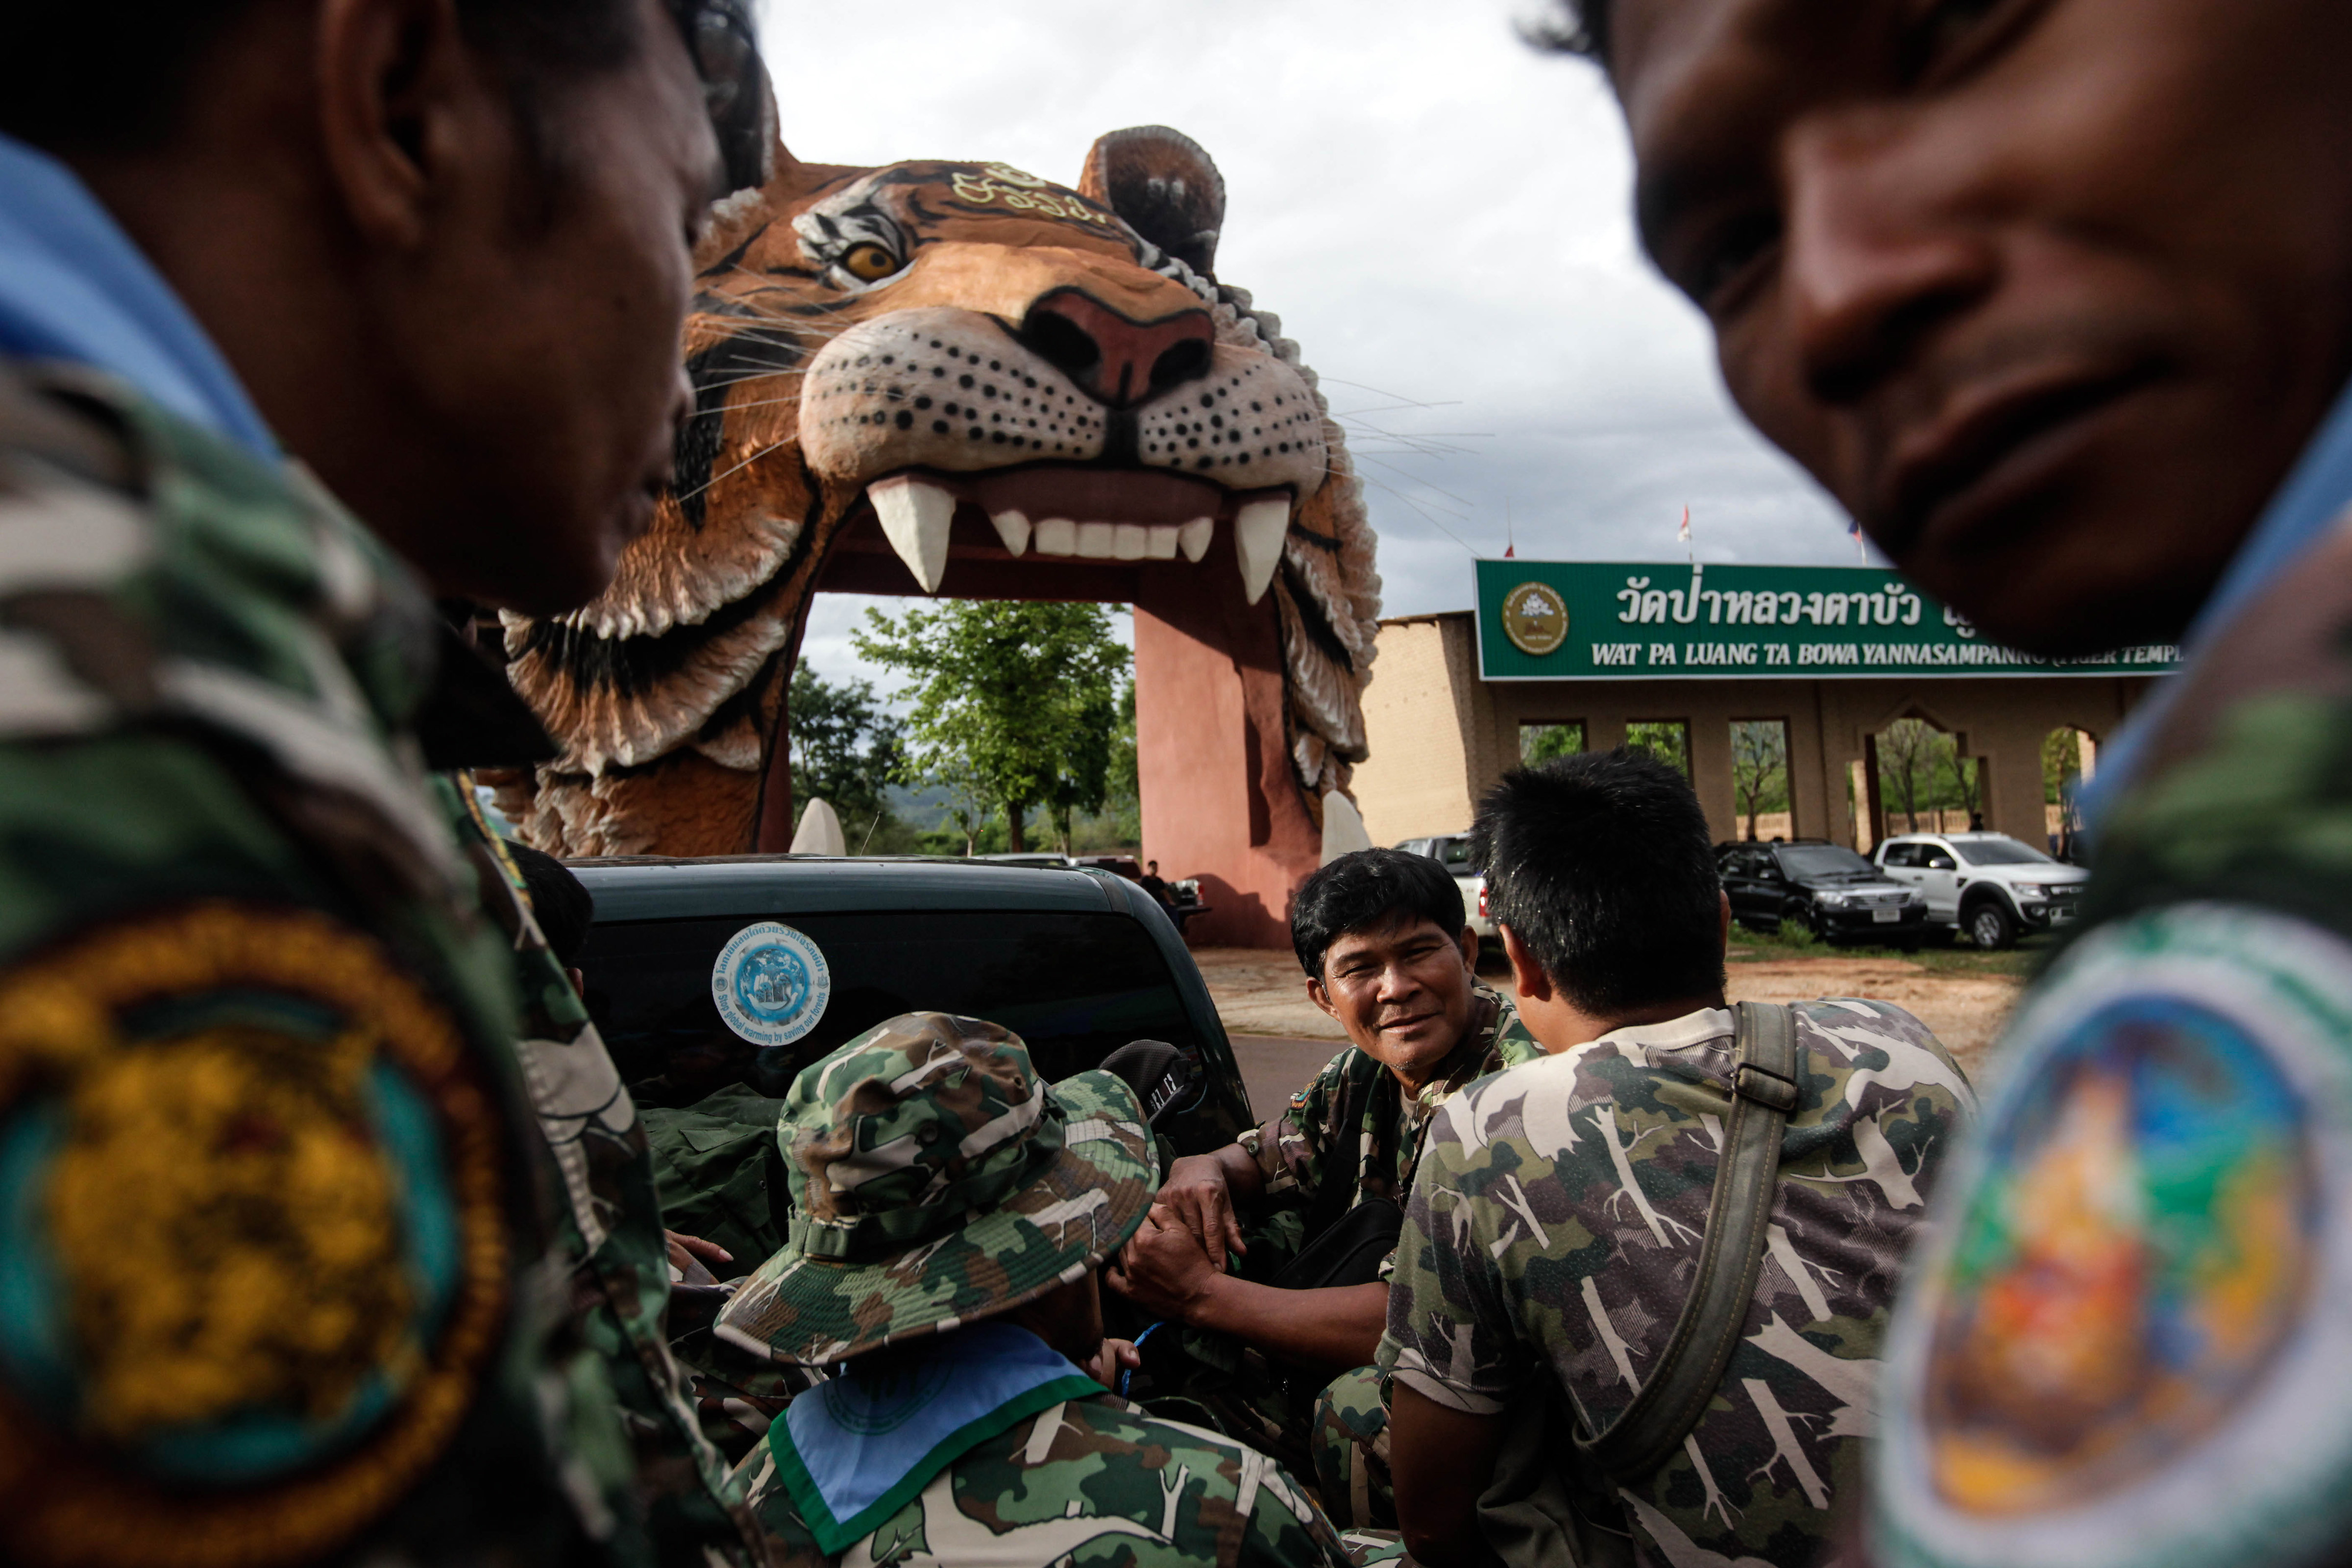 Thai DNP officers sit on a truck at the entrance of Wat Pha Luang Ta Bua Yanasampanno, or the Tiger Temple, on June 1, 2016, in Kanchanaburi province, Thailand. Wildlife authorities in Thailand have shut the temple down following accusations the monks were illegally breeding and trafficking endangered animals